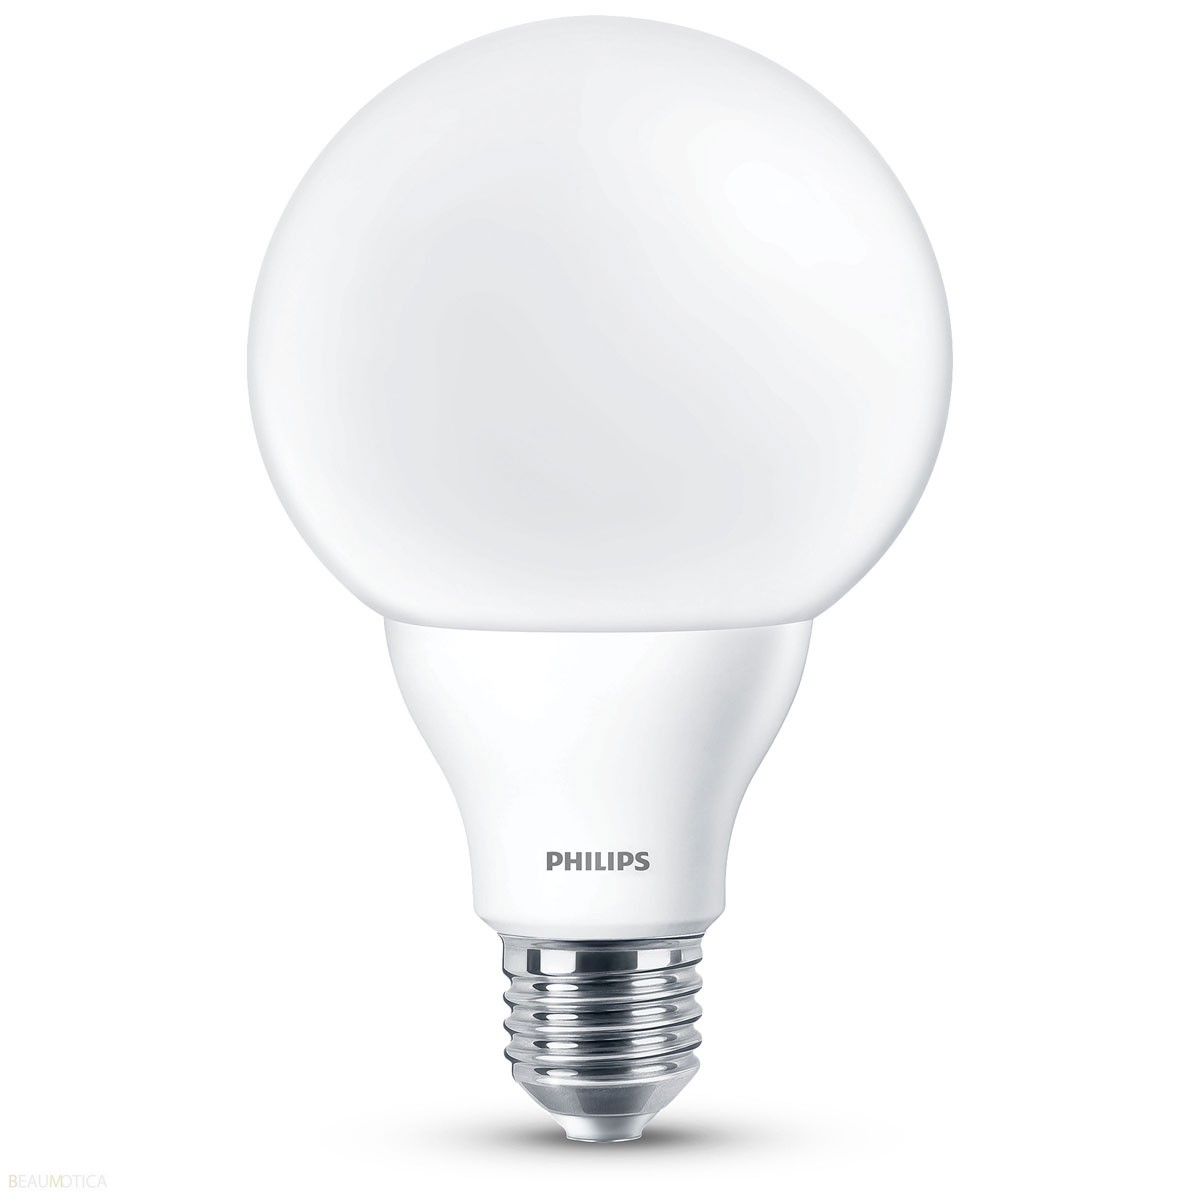 Philips led lamp e27 60w warm wit dimbaar led my bookmarks led lampen dimmen philips hue products e27 parisarafo Image collections